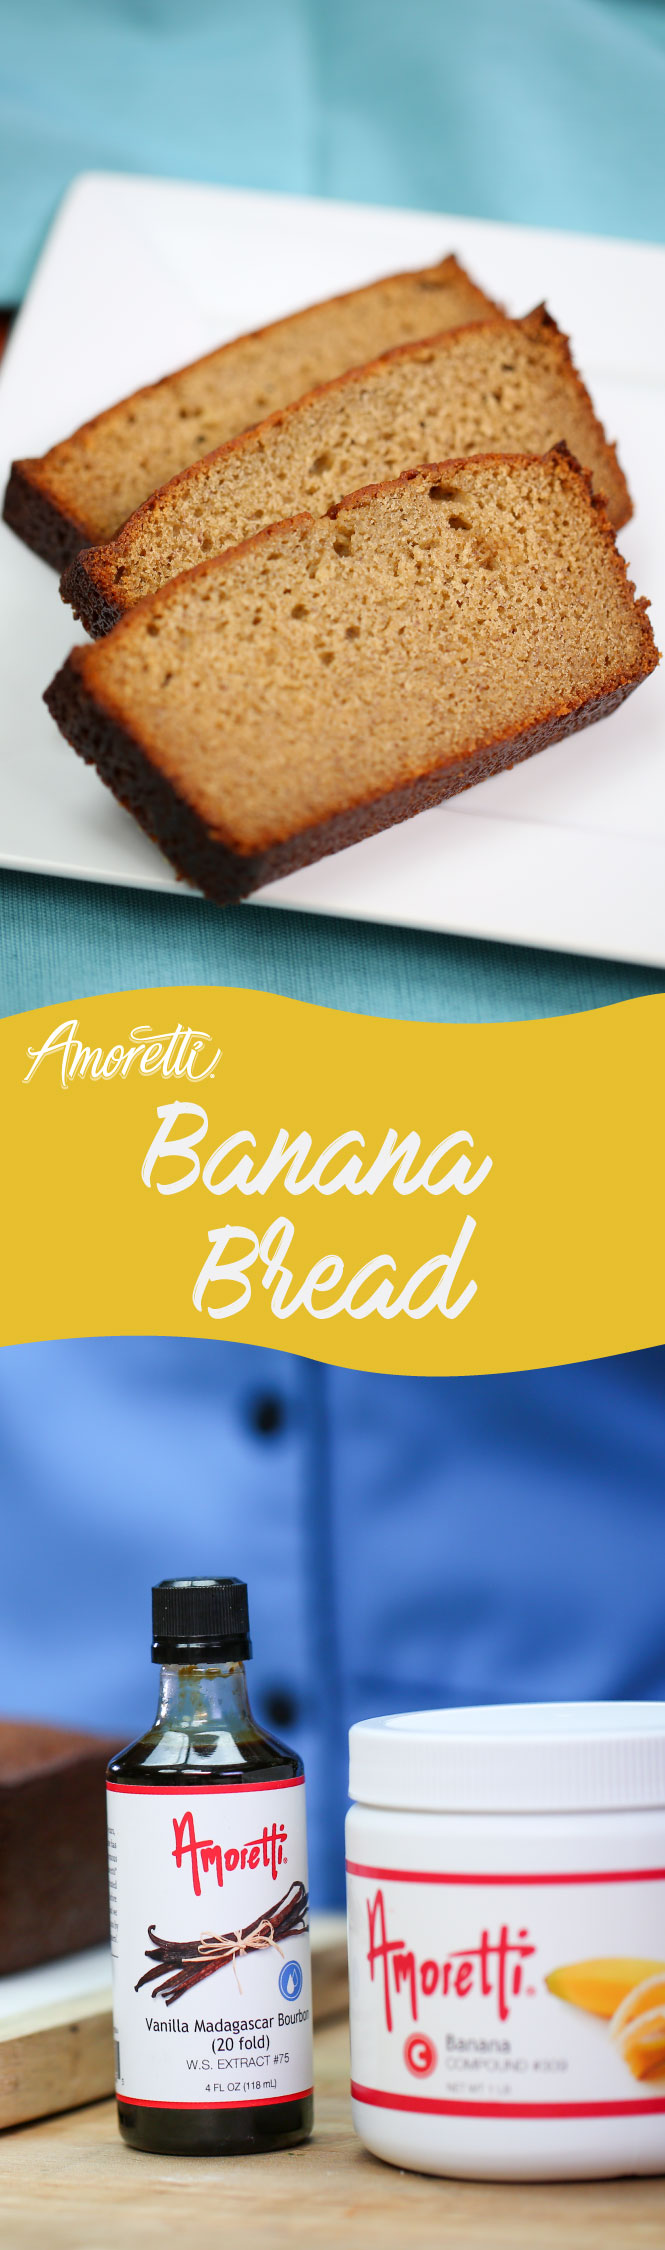 Amoretti Banana Bread: Here is our secret recipe for the most flavorful banana bread!